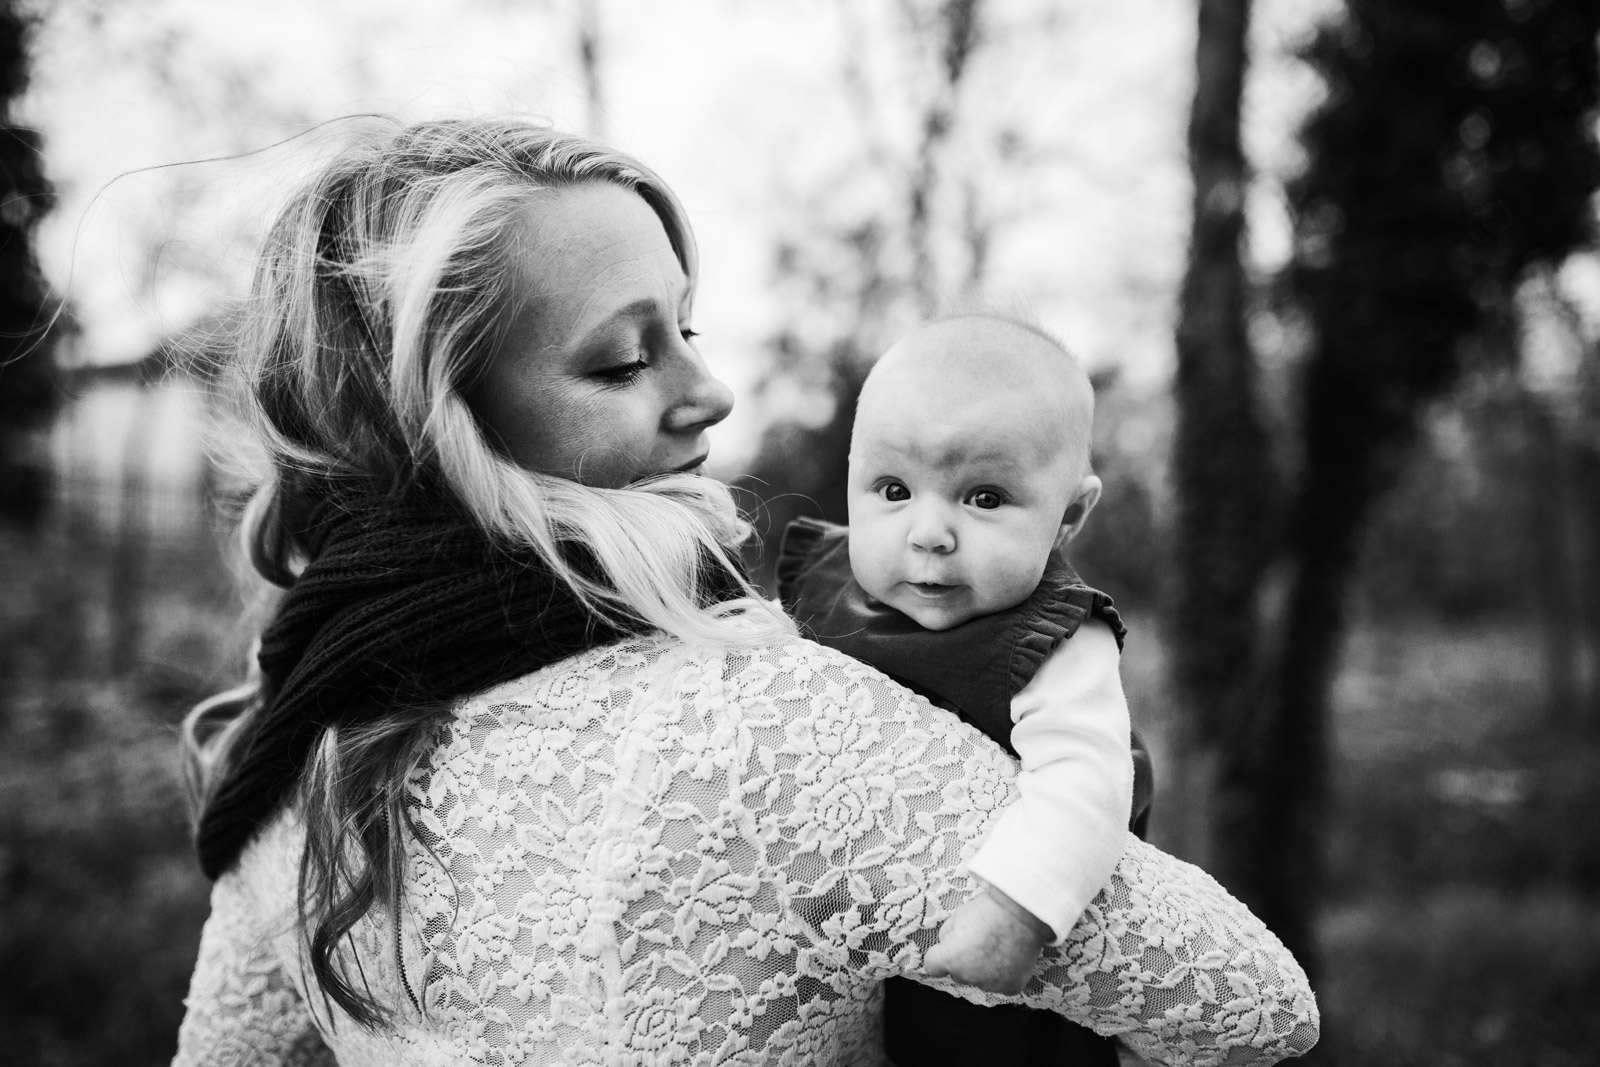 Black and white; mom holding infant at The Barn at One Loudoun, Ashburn, Virginia